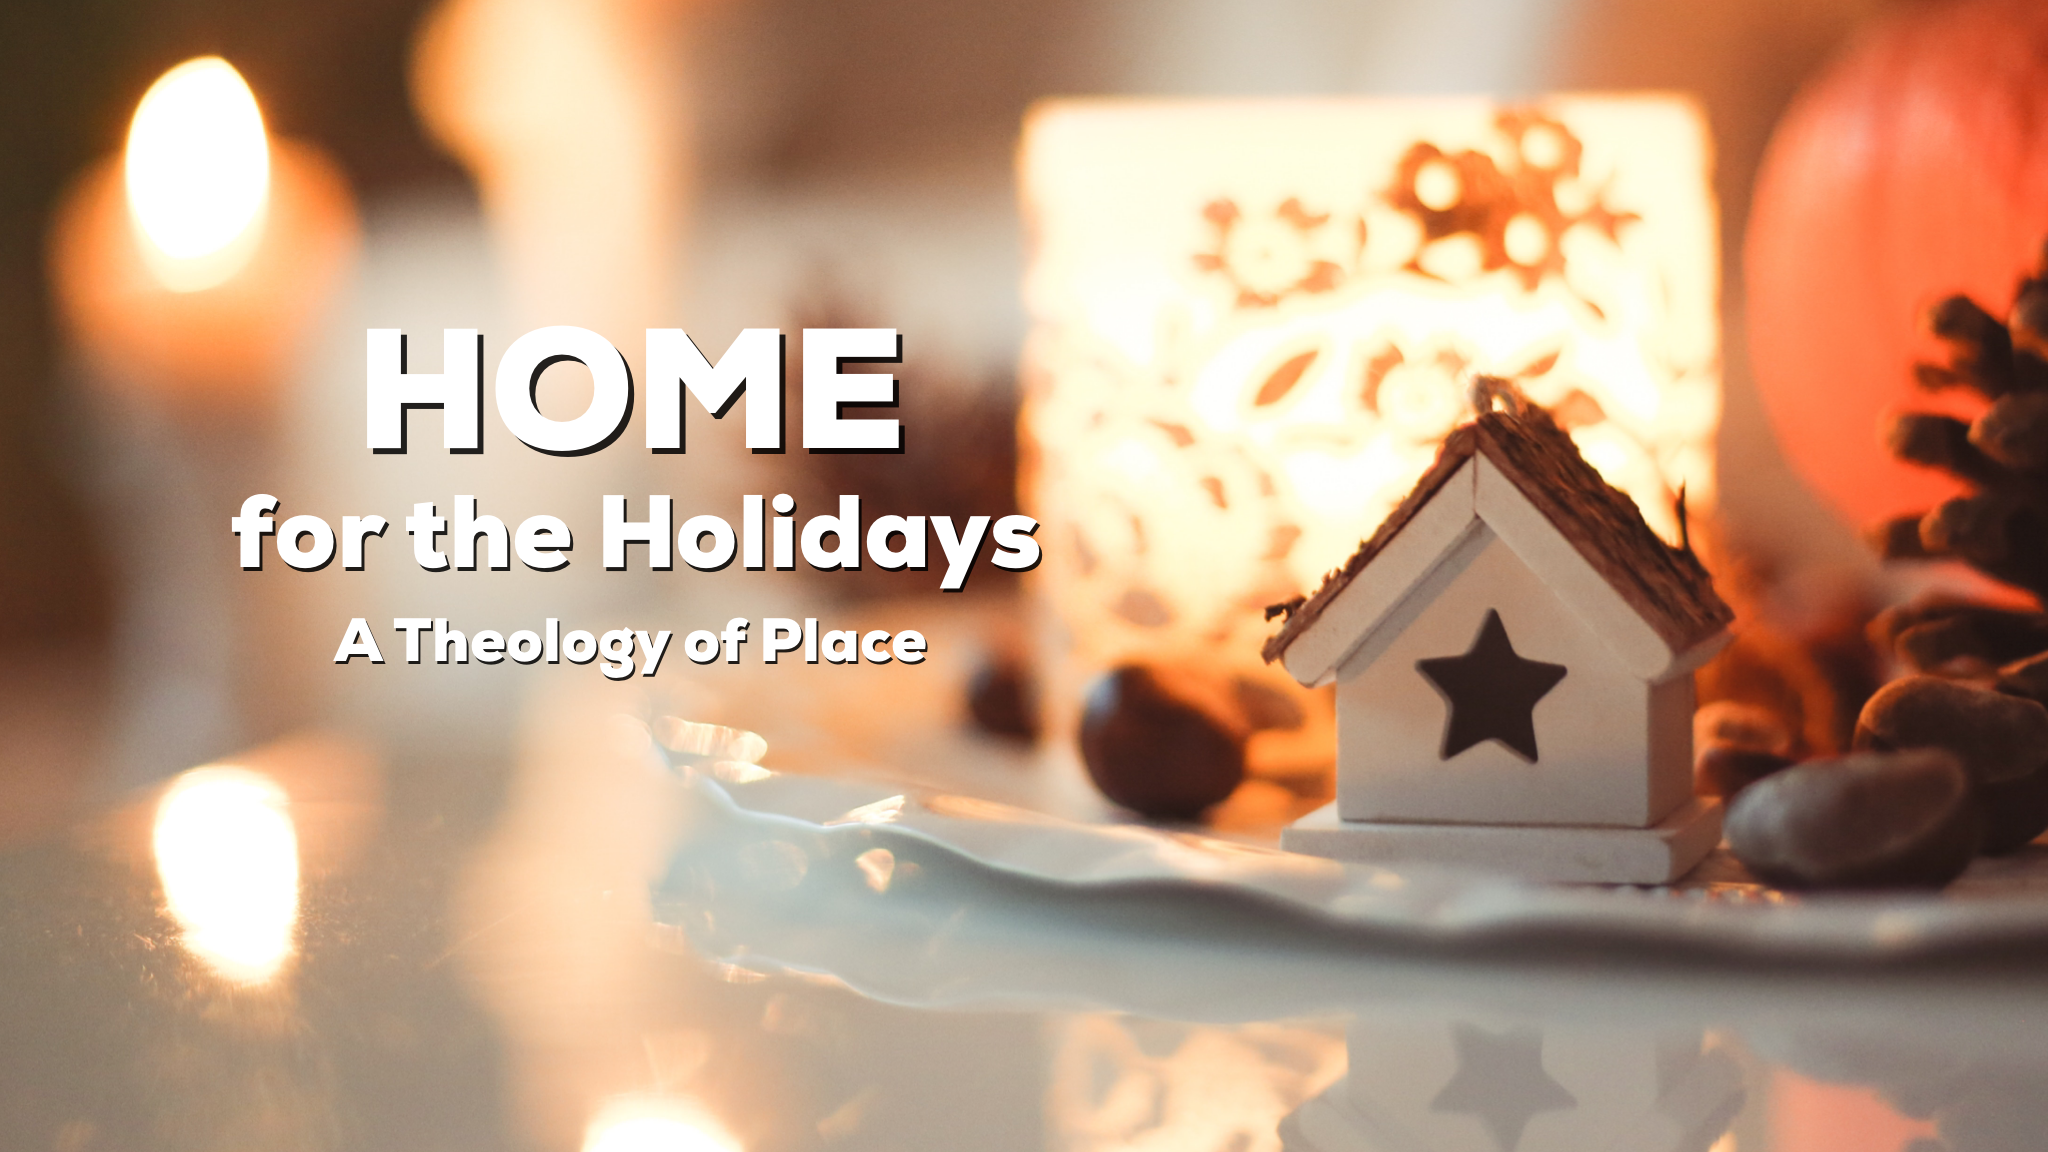 Jesse leads us in a discussion of the importance of place and how God calls us to be both home and homesick and this present age. We also talked about the importance of hospitality and bring others along with us into the kingdom.